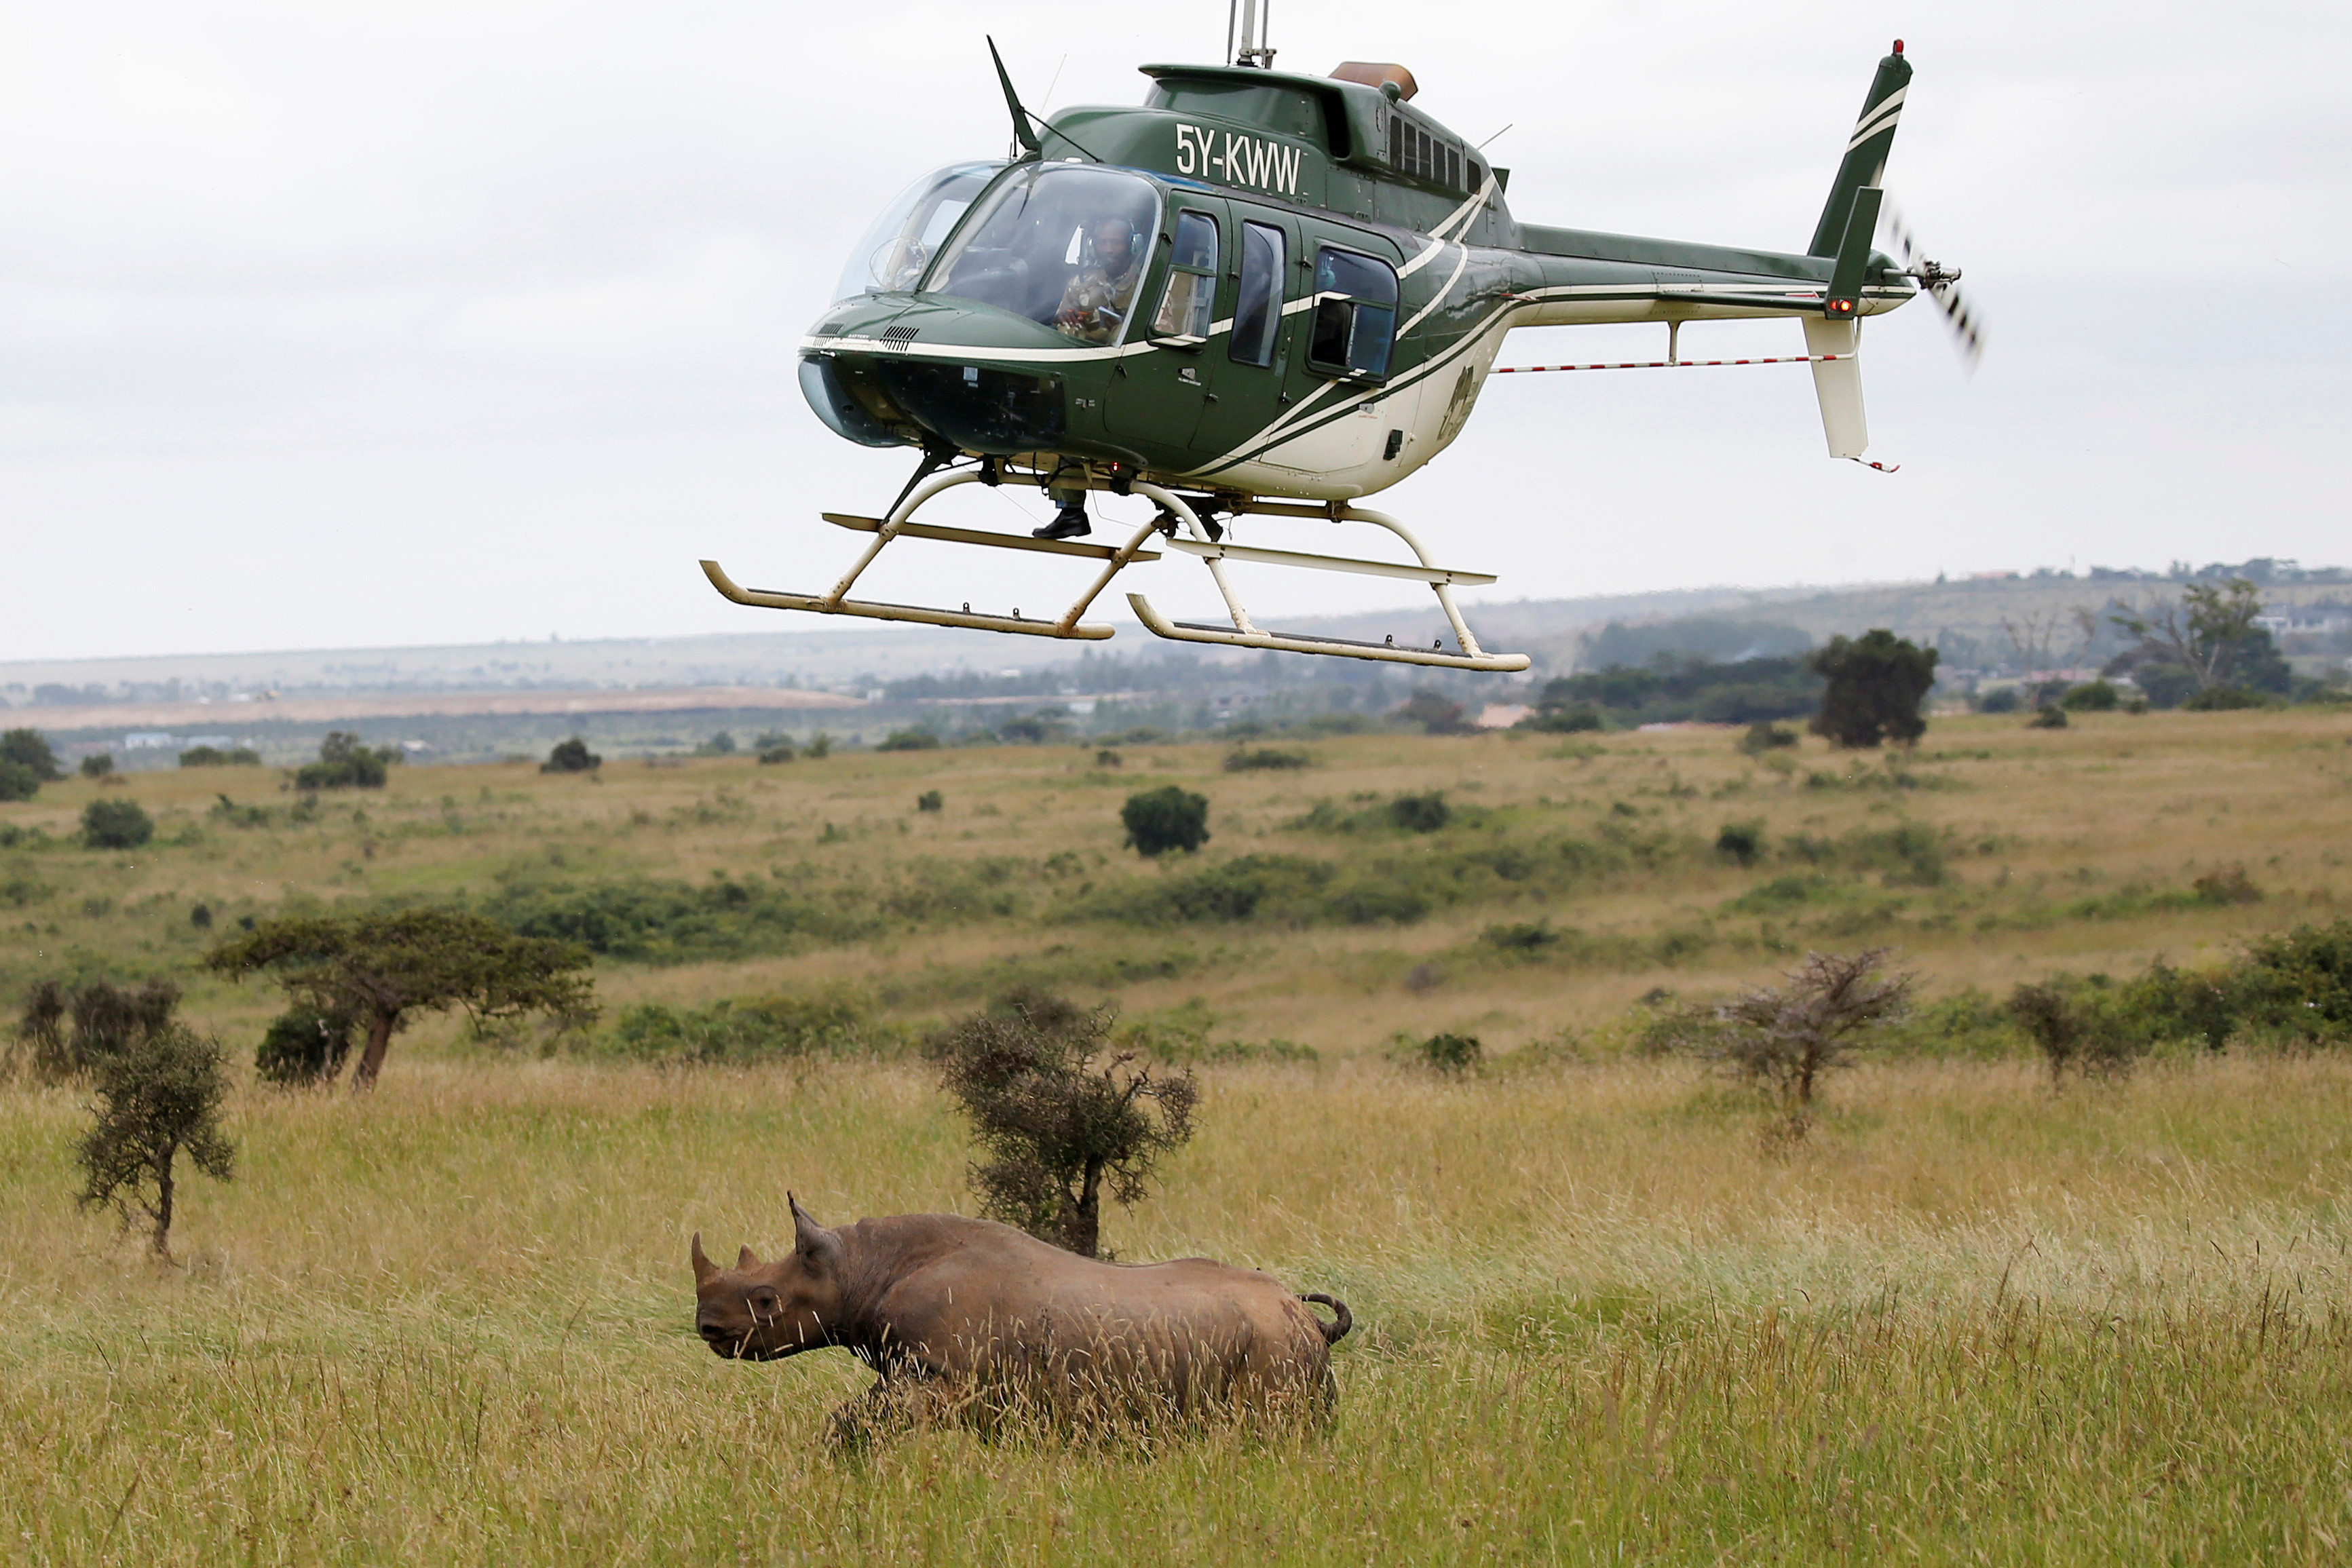 Kenya Wildlife Service (KWS) personnel on board a helicopter try to tranquillise a female black rhino before transporting it as part of a rhino translocation exercise In the Nairobi National Park, Kenya, June 26, 2018. REUTERS/Baz Ratner - RC1B6B99C0E0